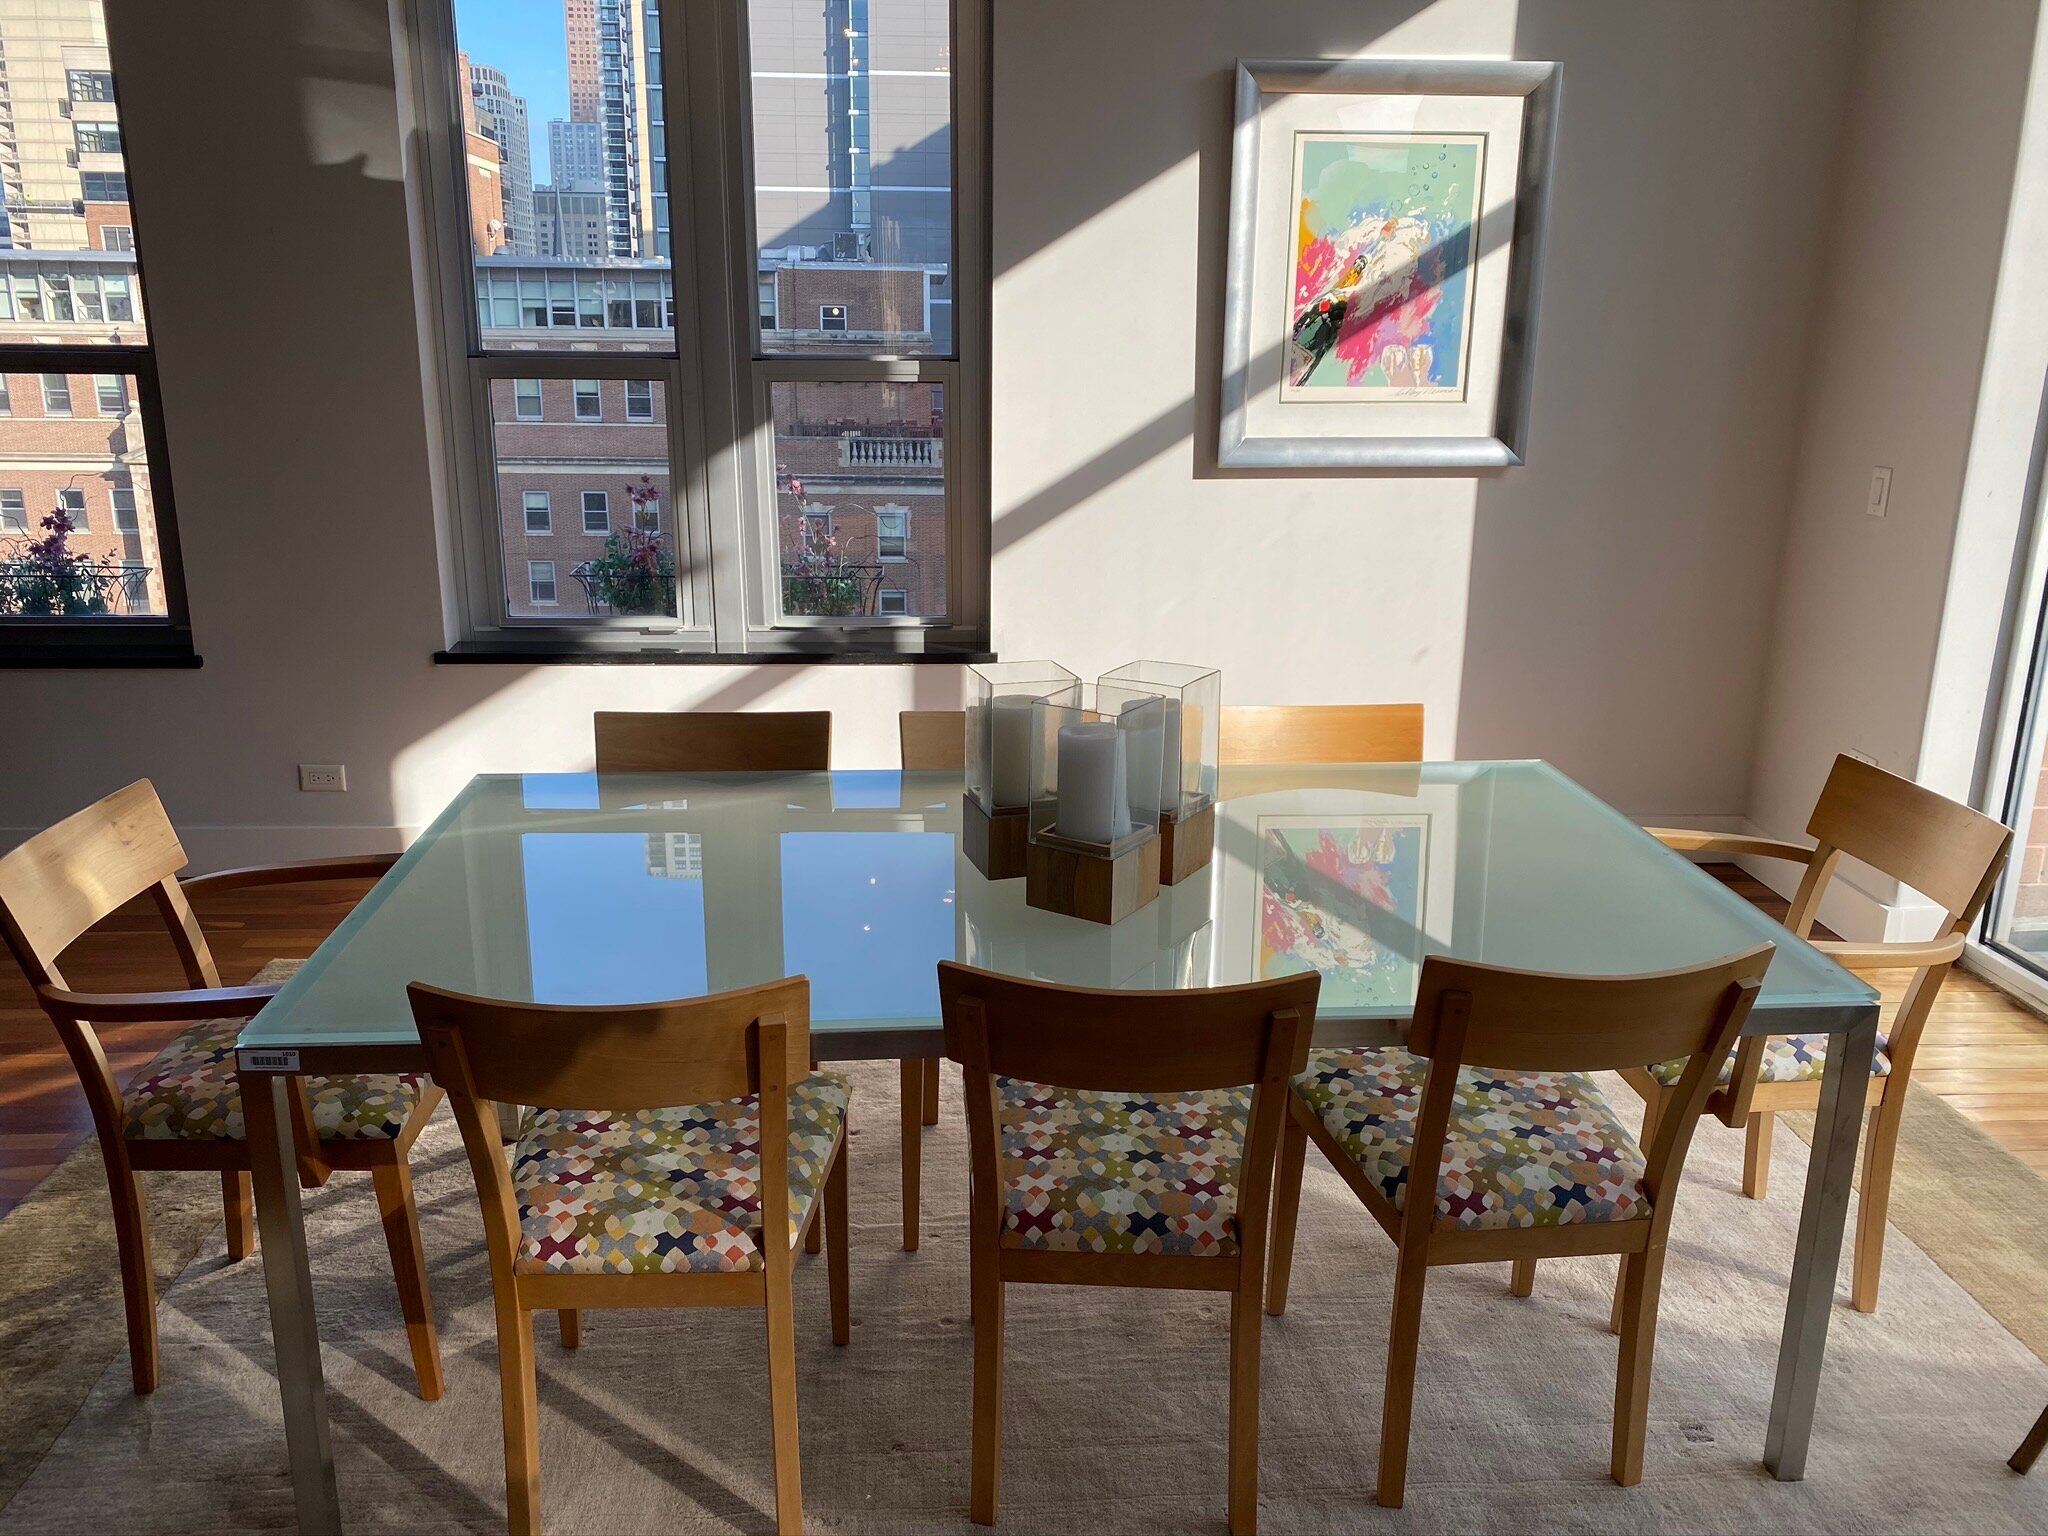 Online Only Auction 2 Million Condo In Chicago Estate